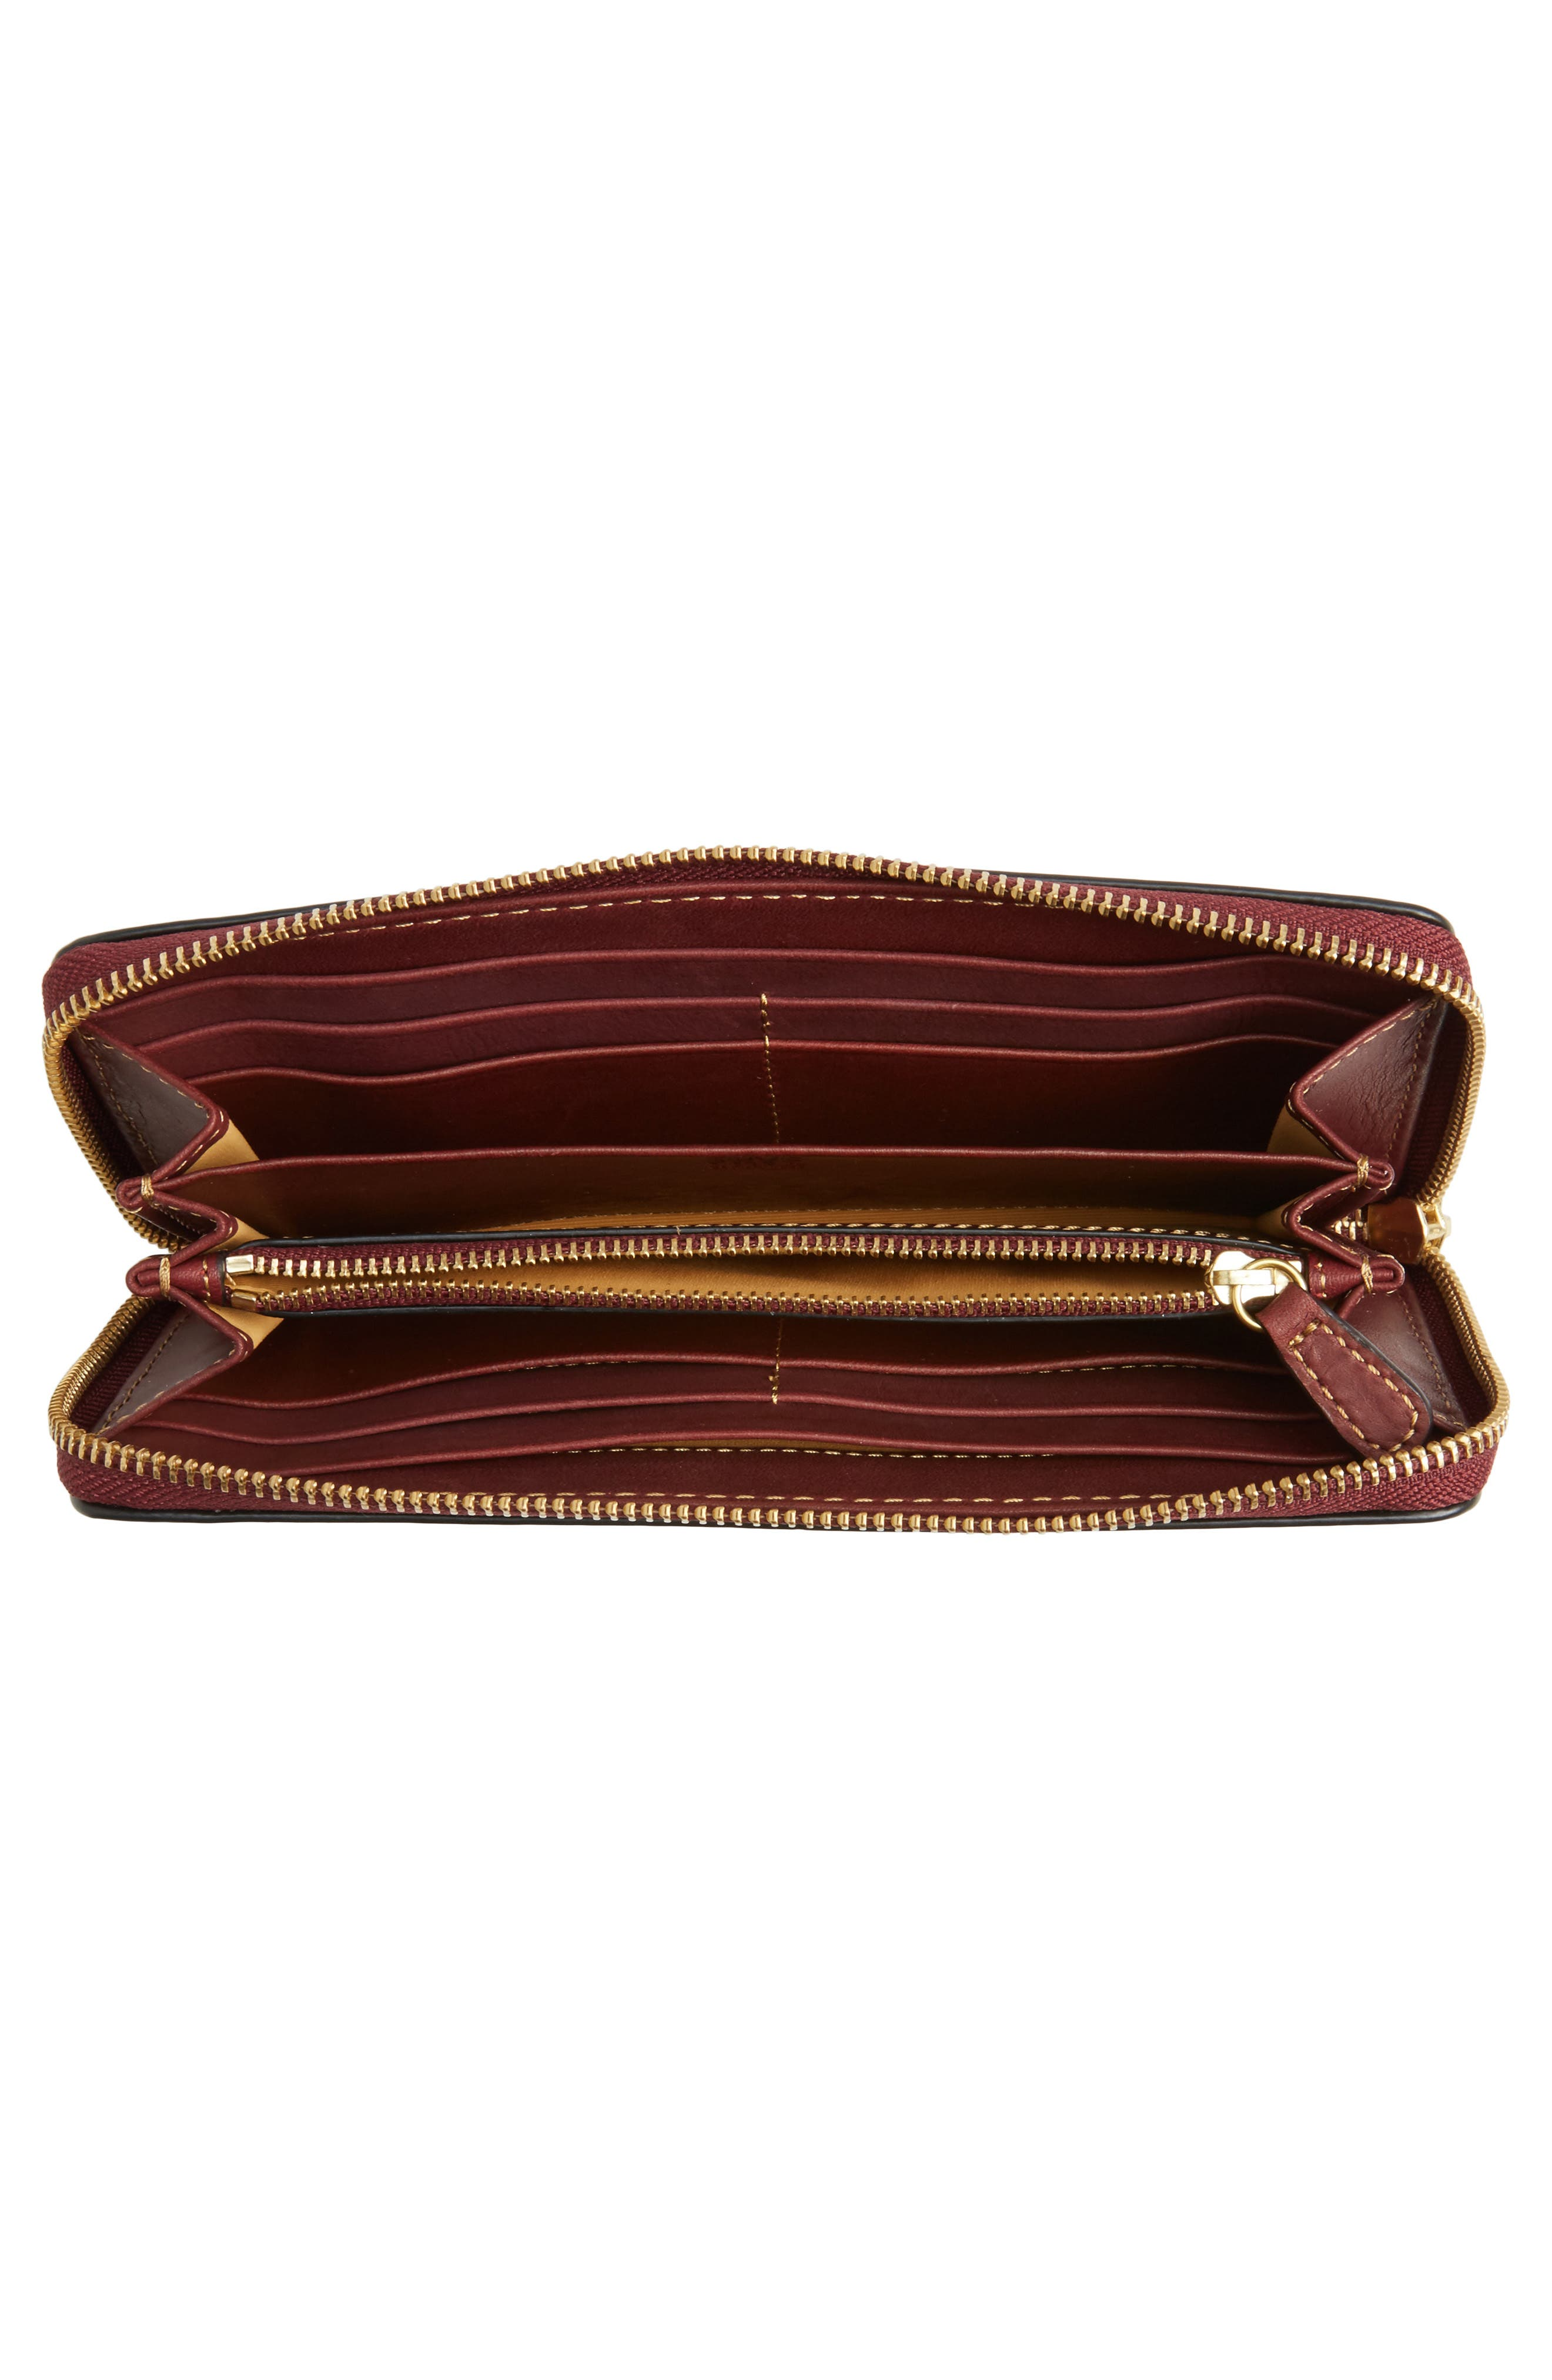 Ilana Harness Leather Zip Wallet,                             Alternate thumbnail 2, color,                             Wine